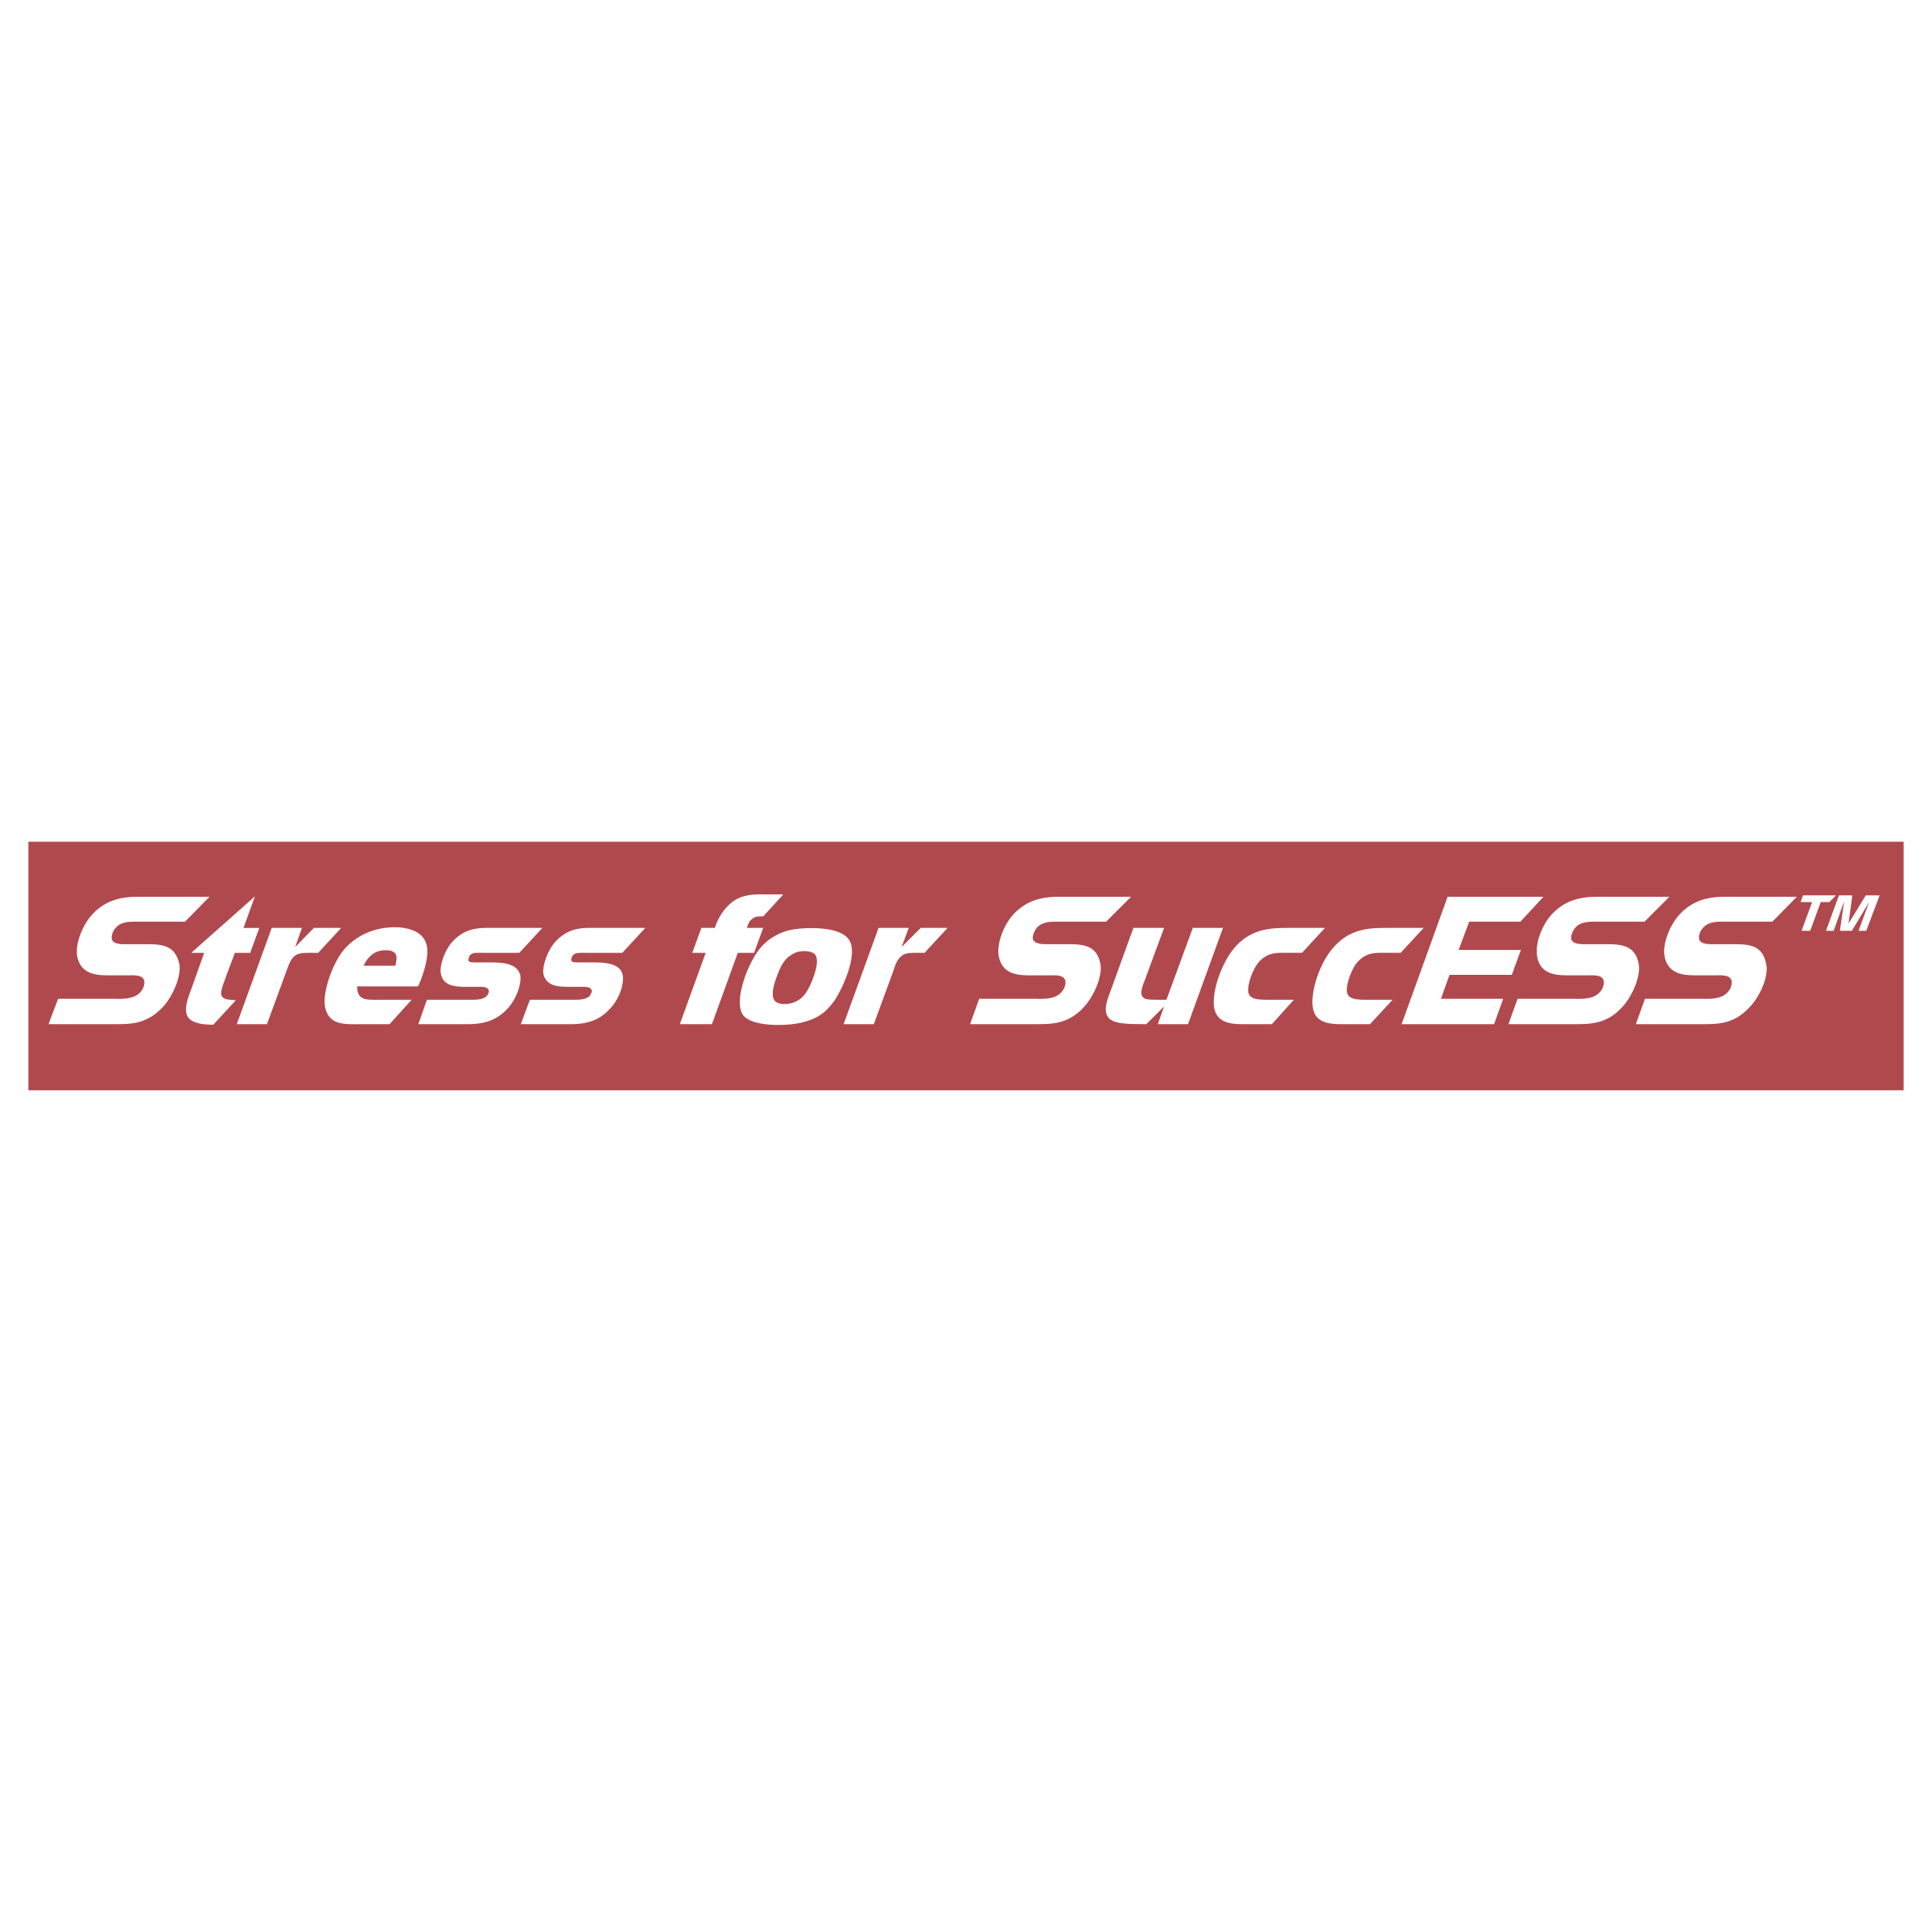 Success transparent red. Stress for logo png